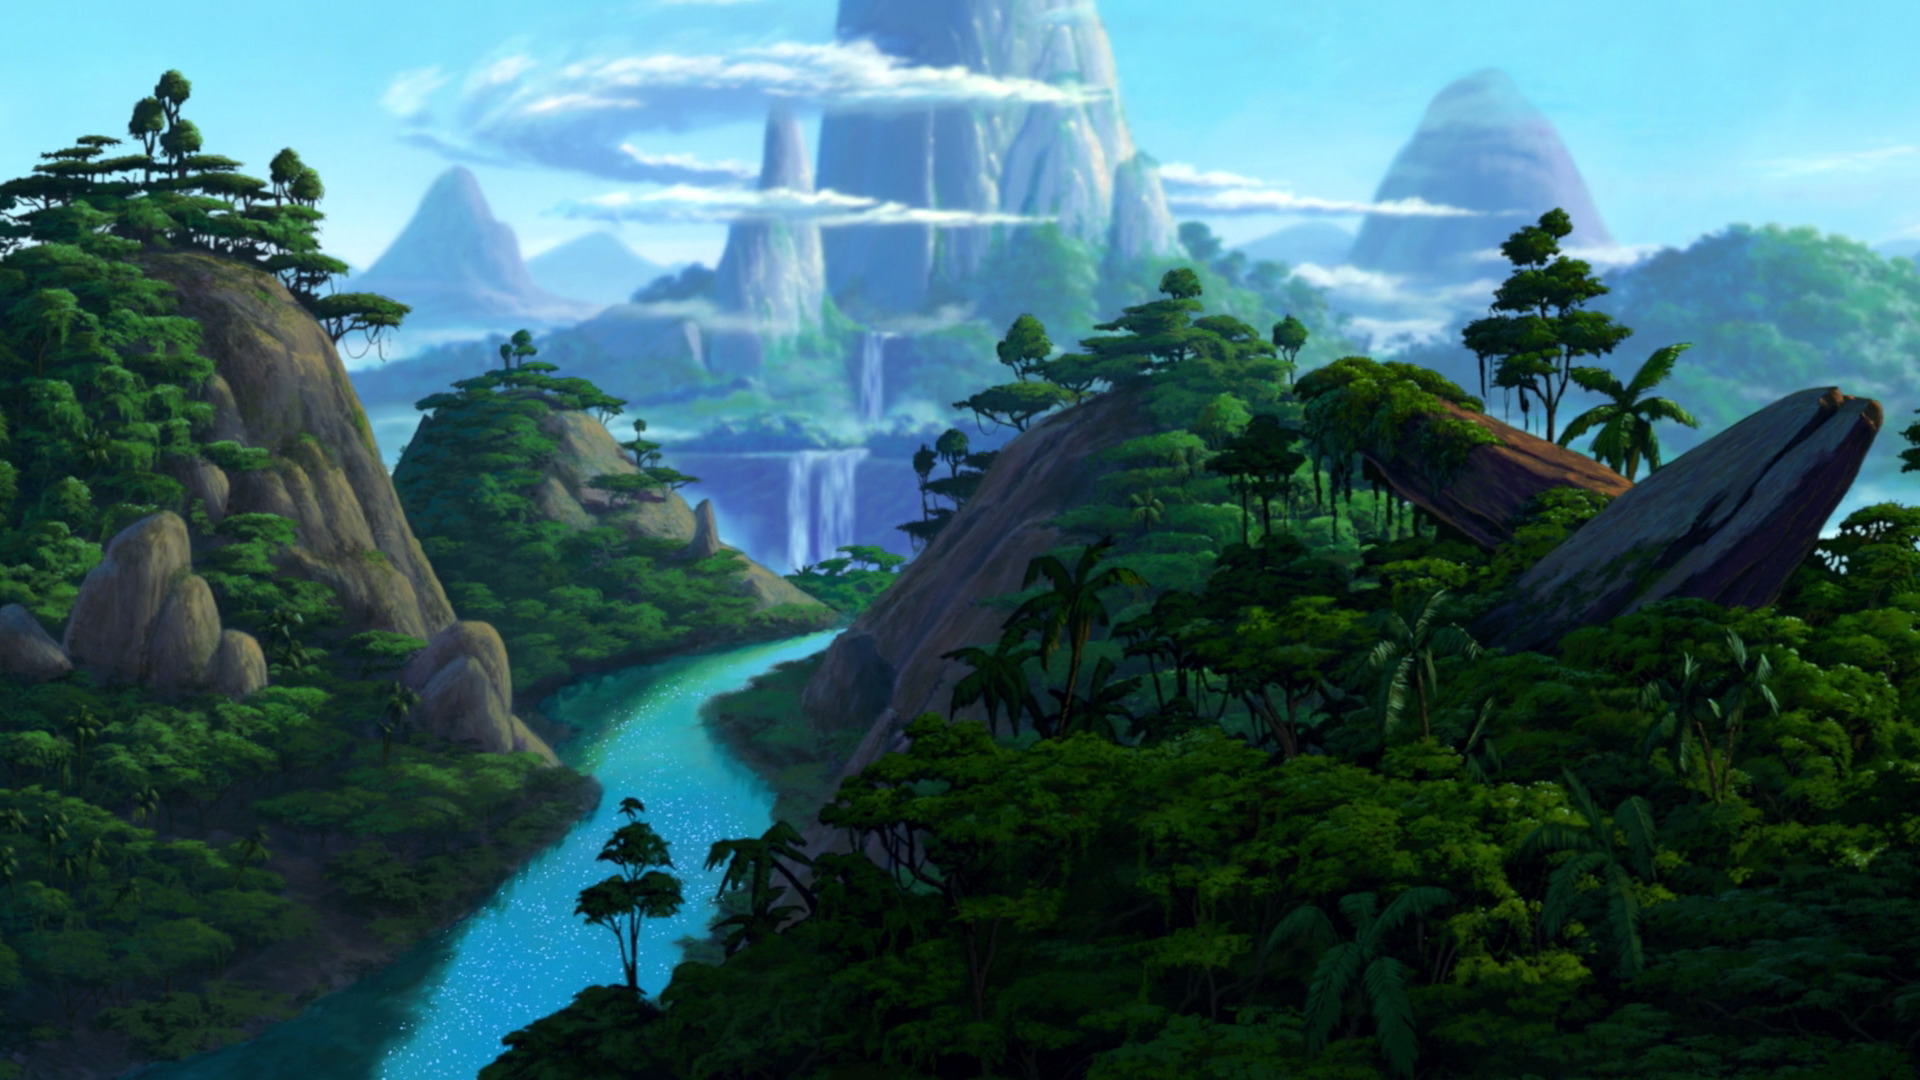 Jungle (The Lion King)